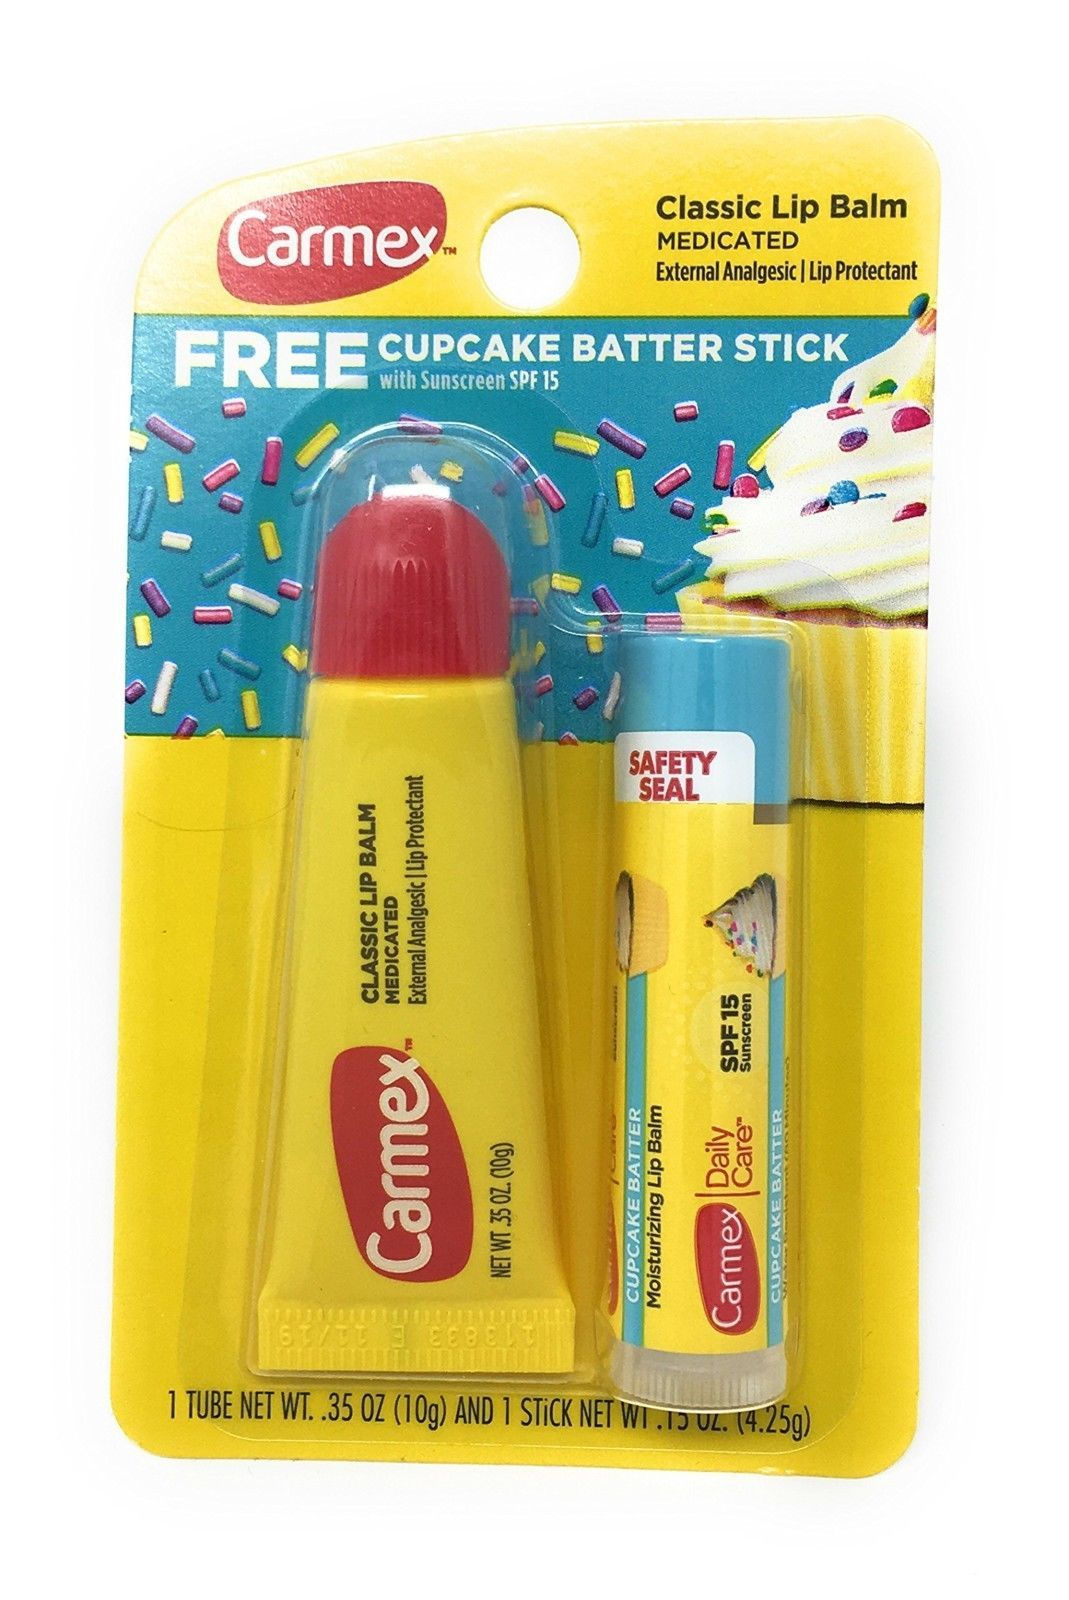 Carmex Classic Medicated Lip Balm Tube with FREE Cupcake Batter Stick Pack of  2